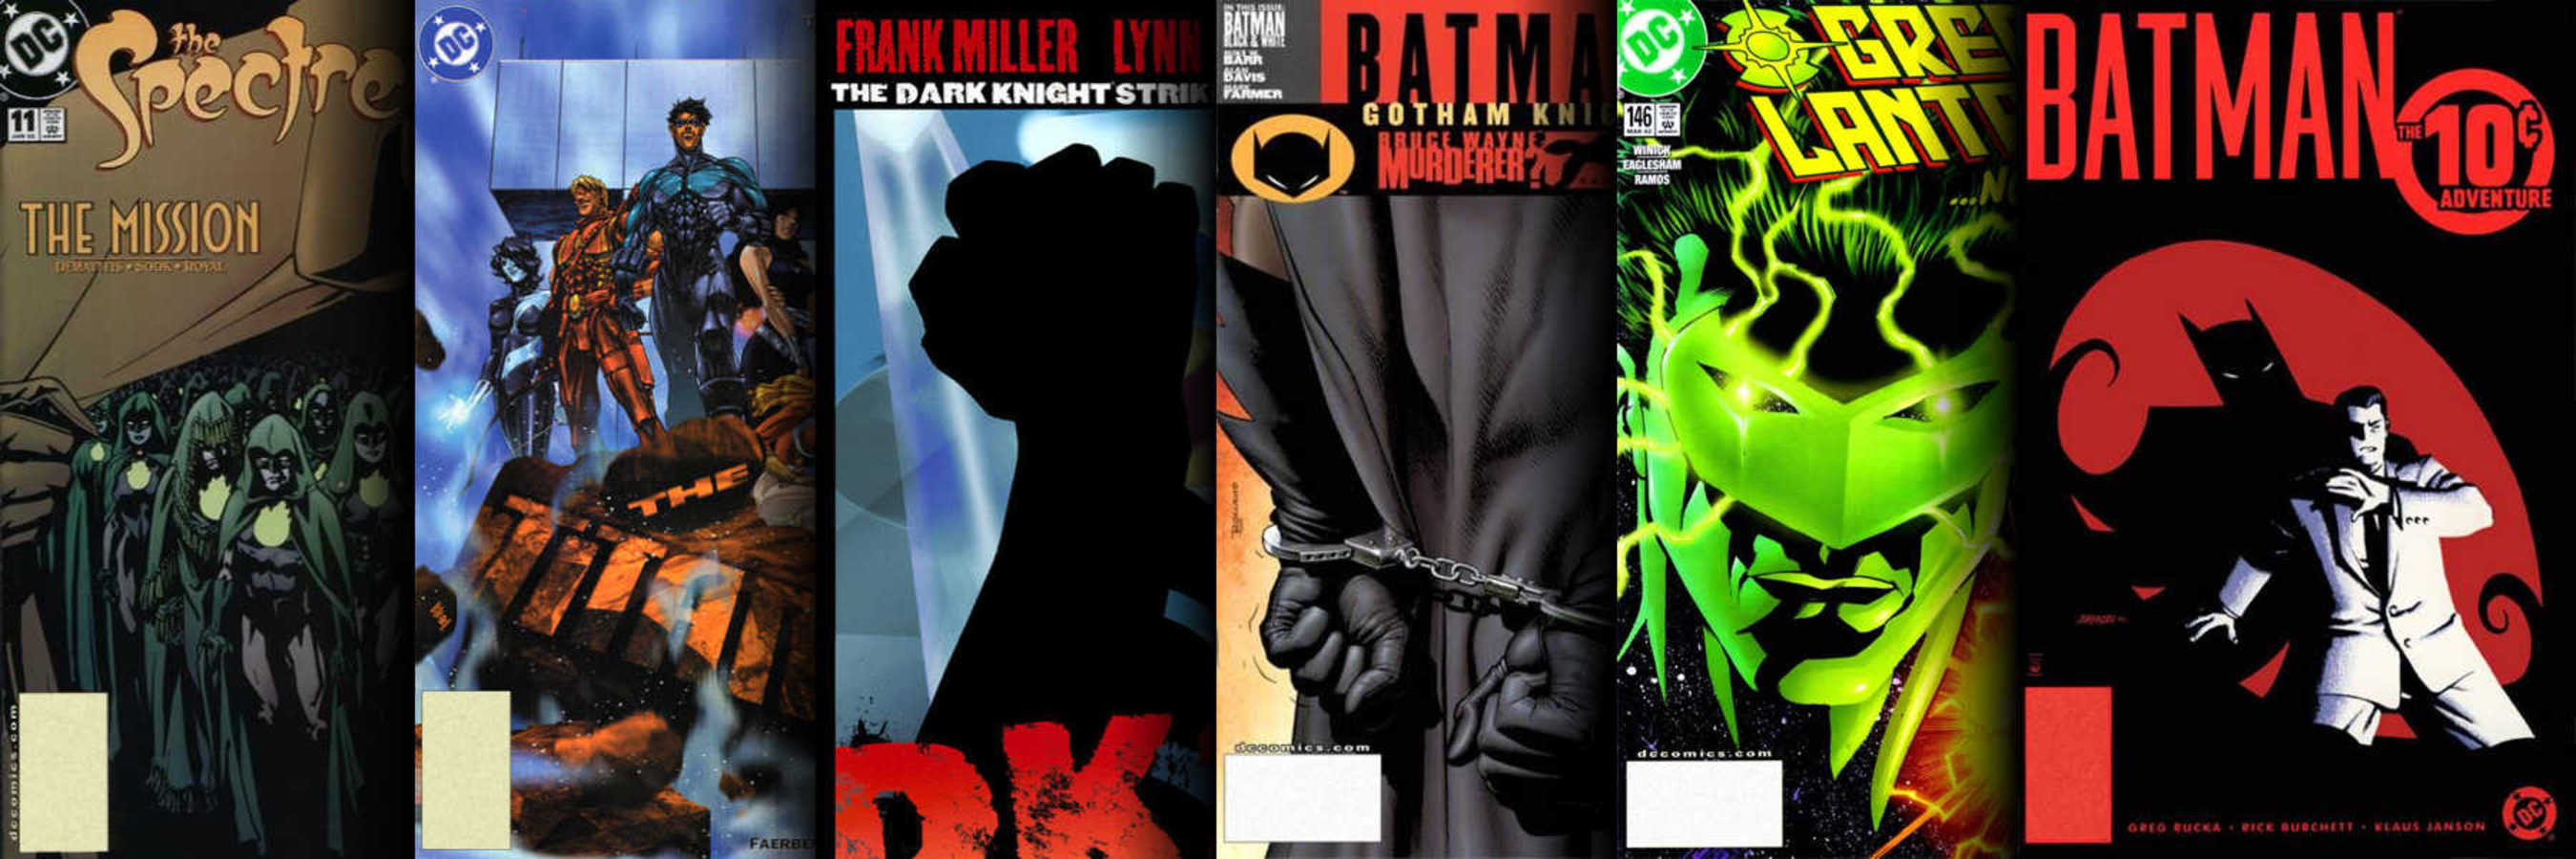 Various issues of DC Comics titles